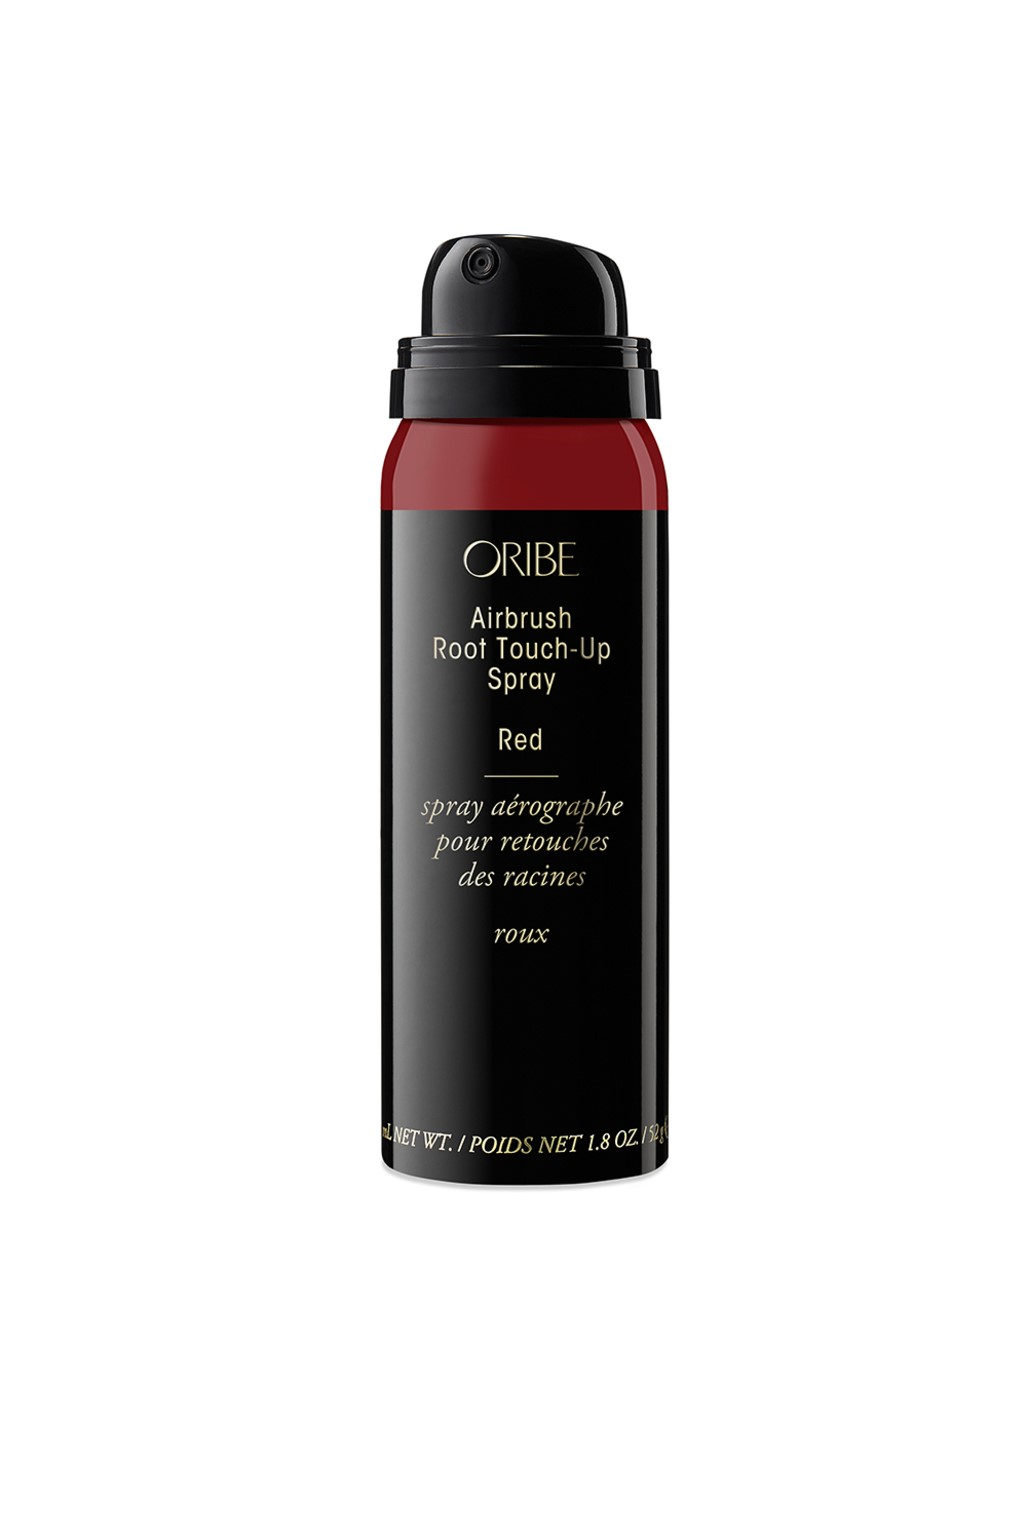 Airbrush Root Touch-Up Spray – Red